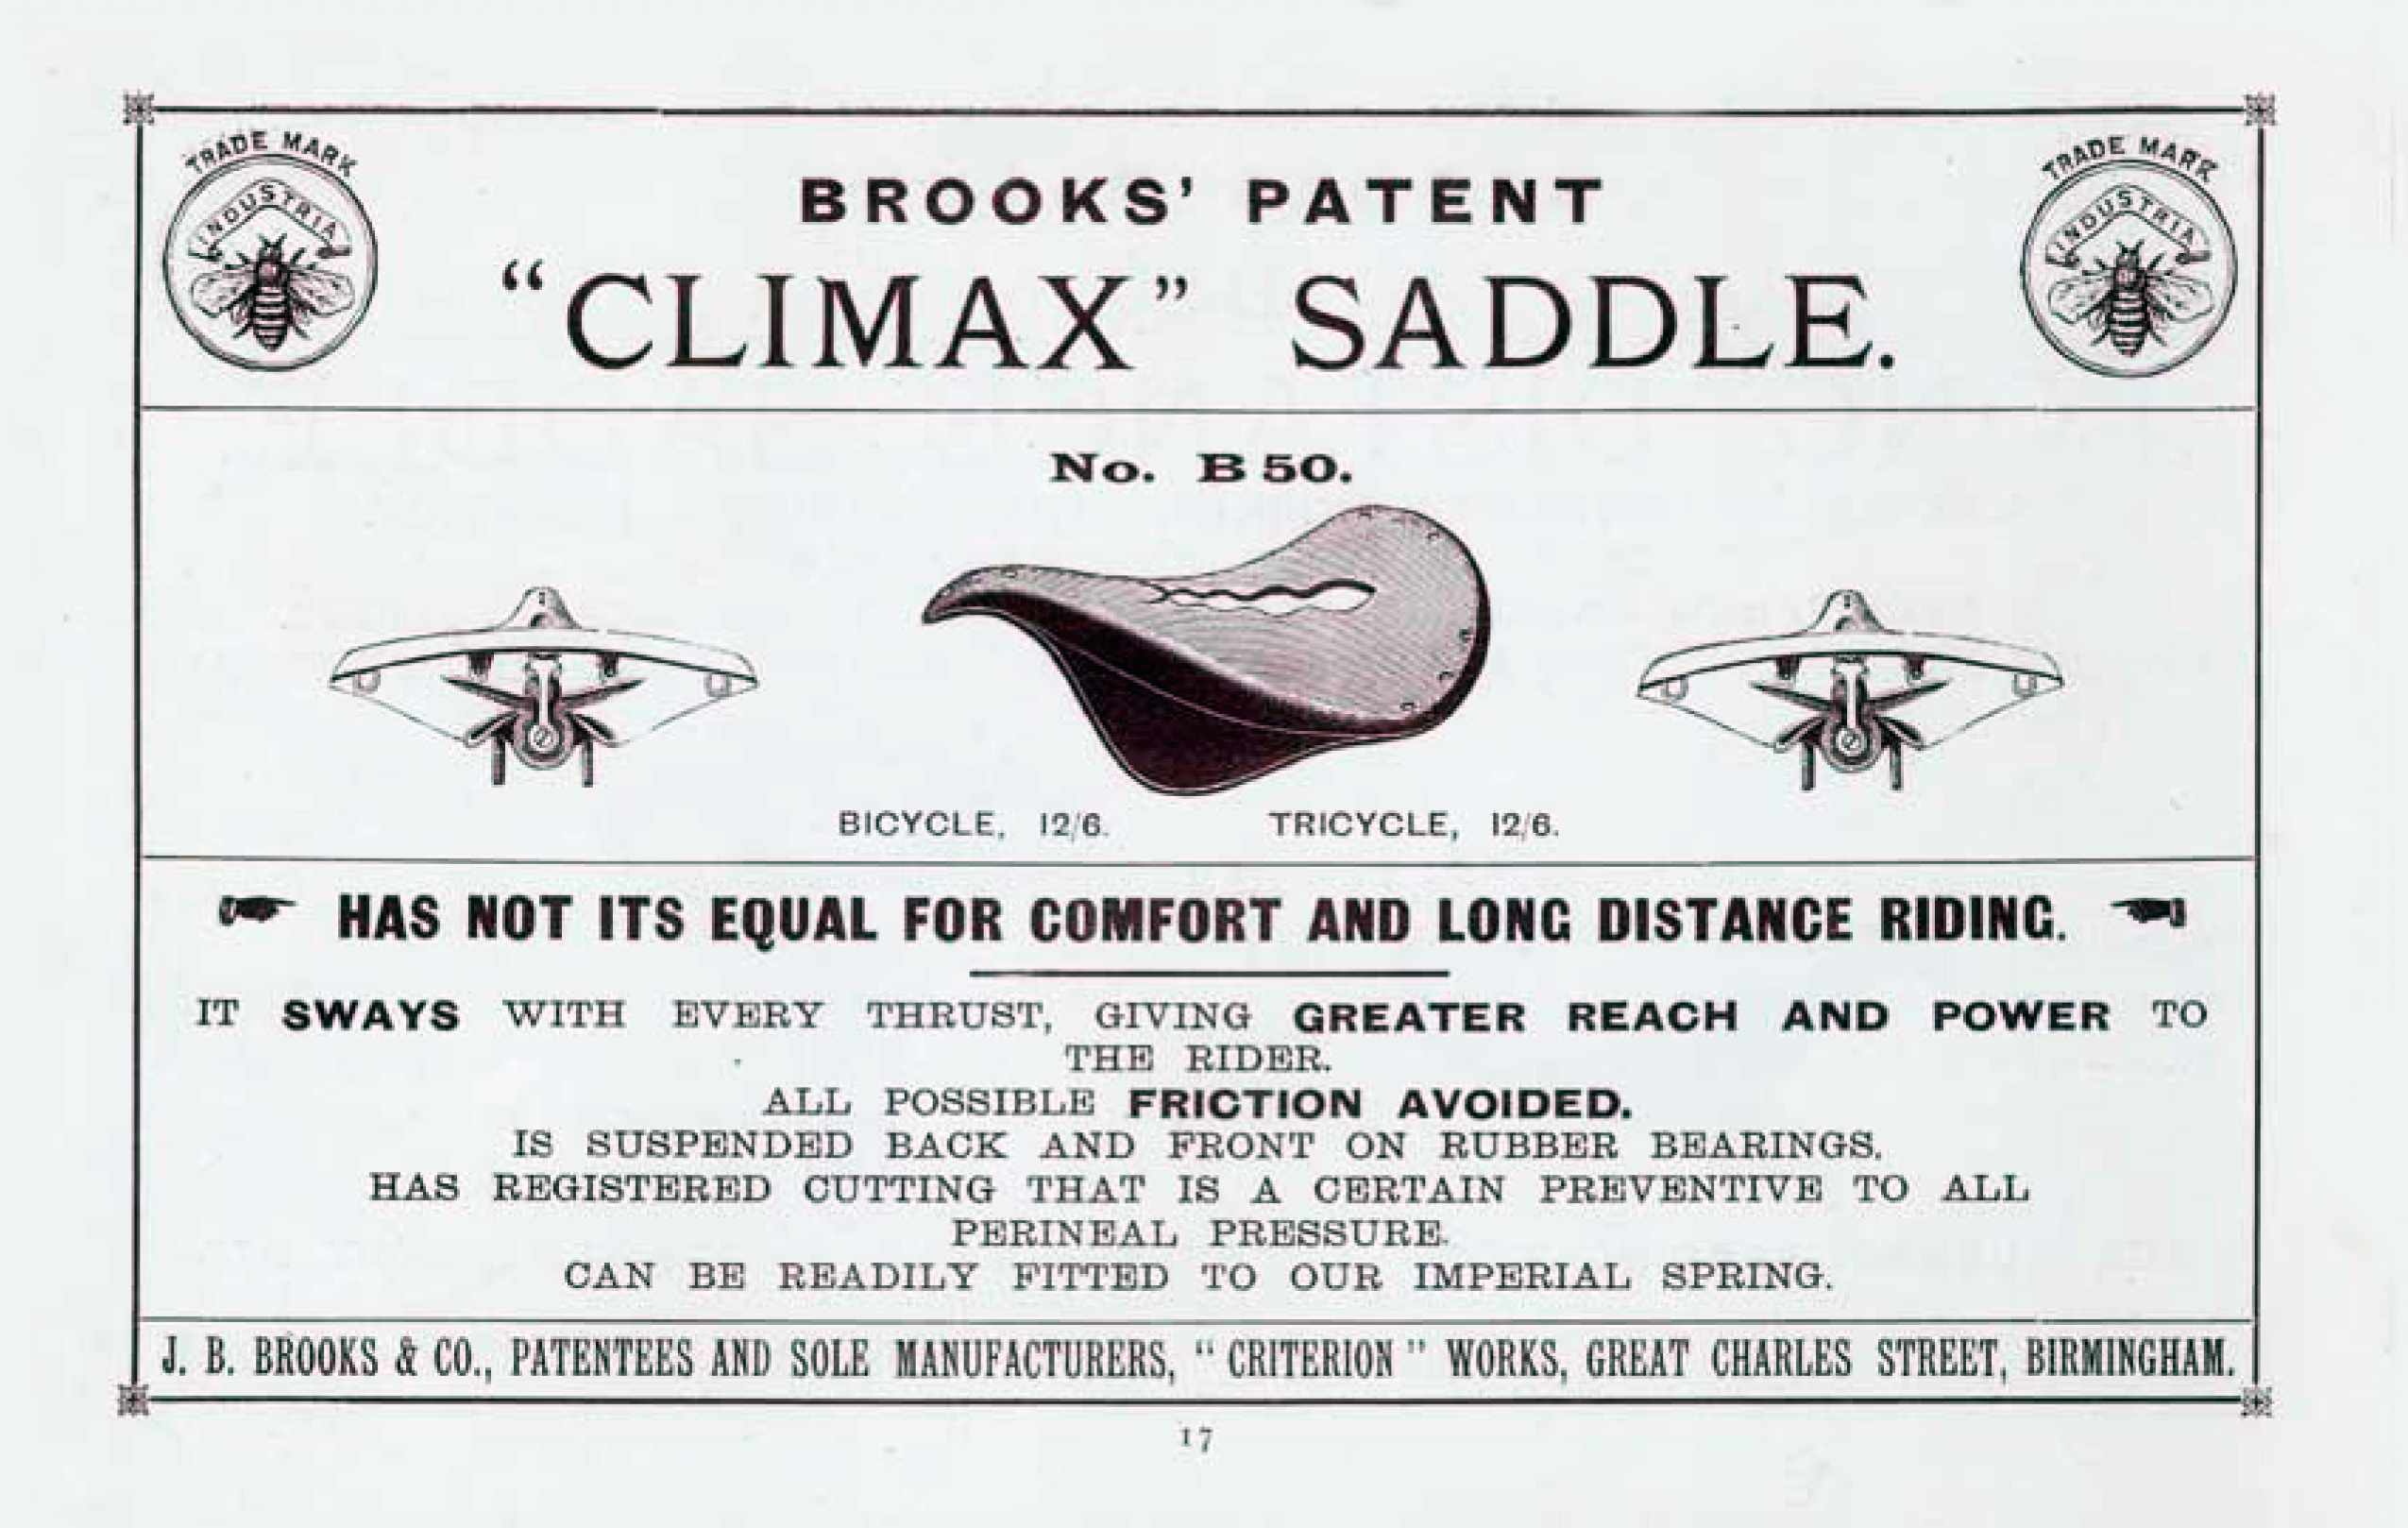 ebykr-brooks-1890-catalog-climax-saddle-page-11